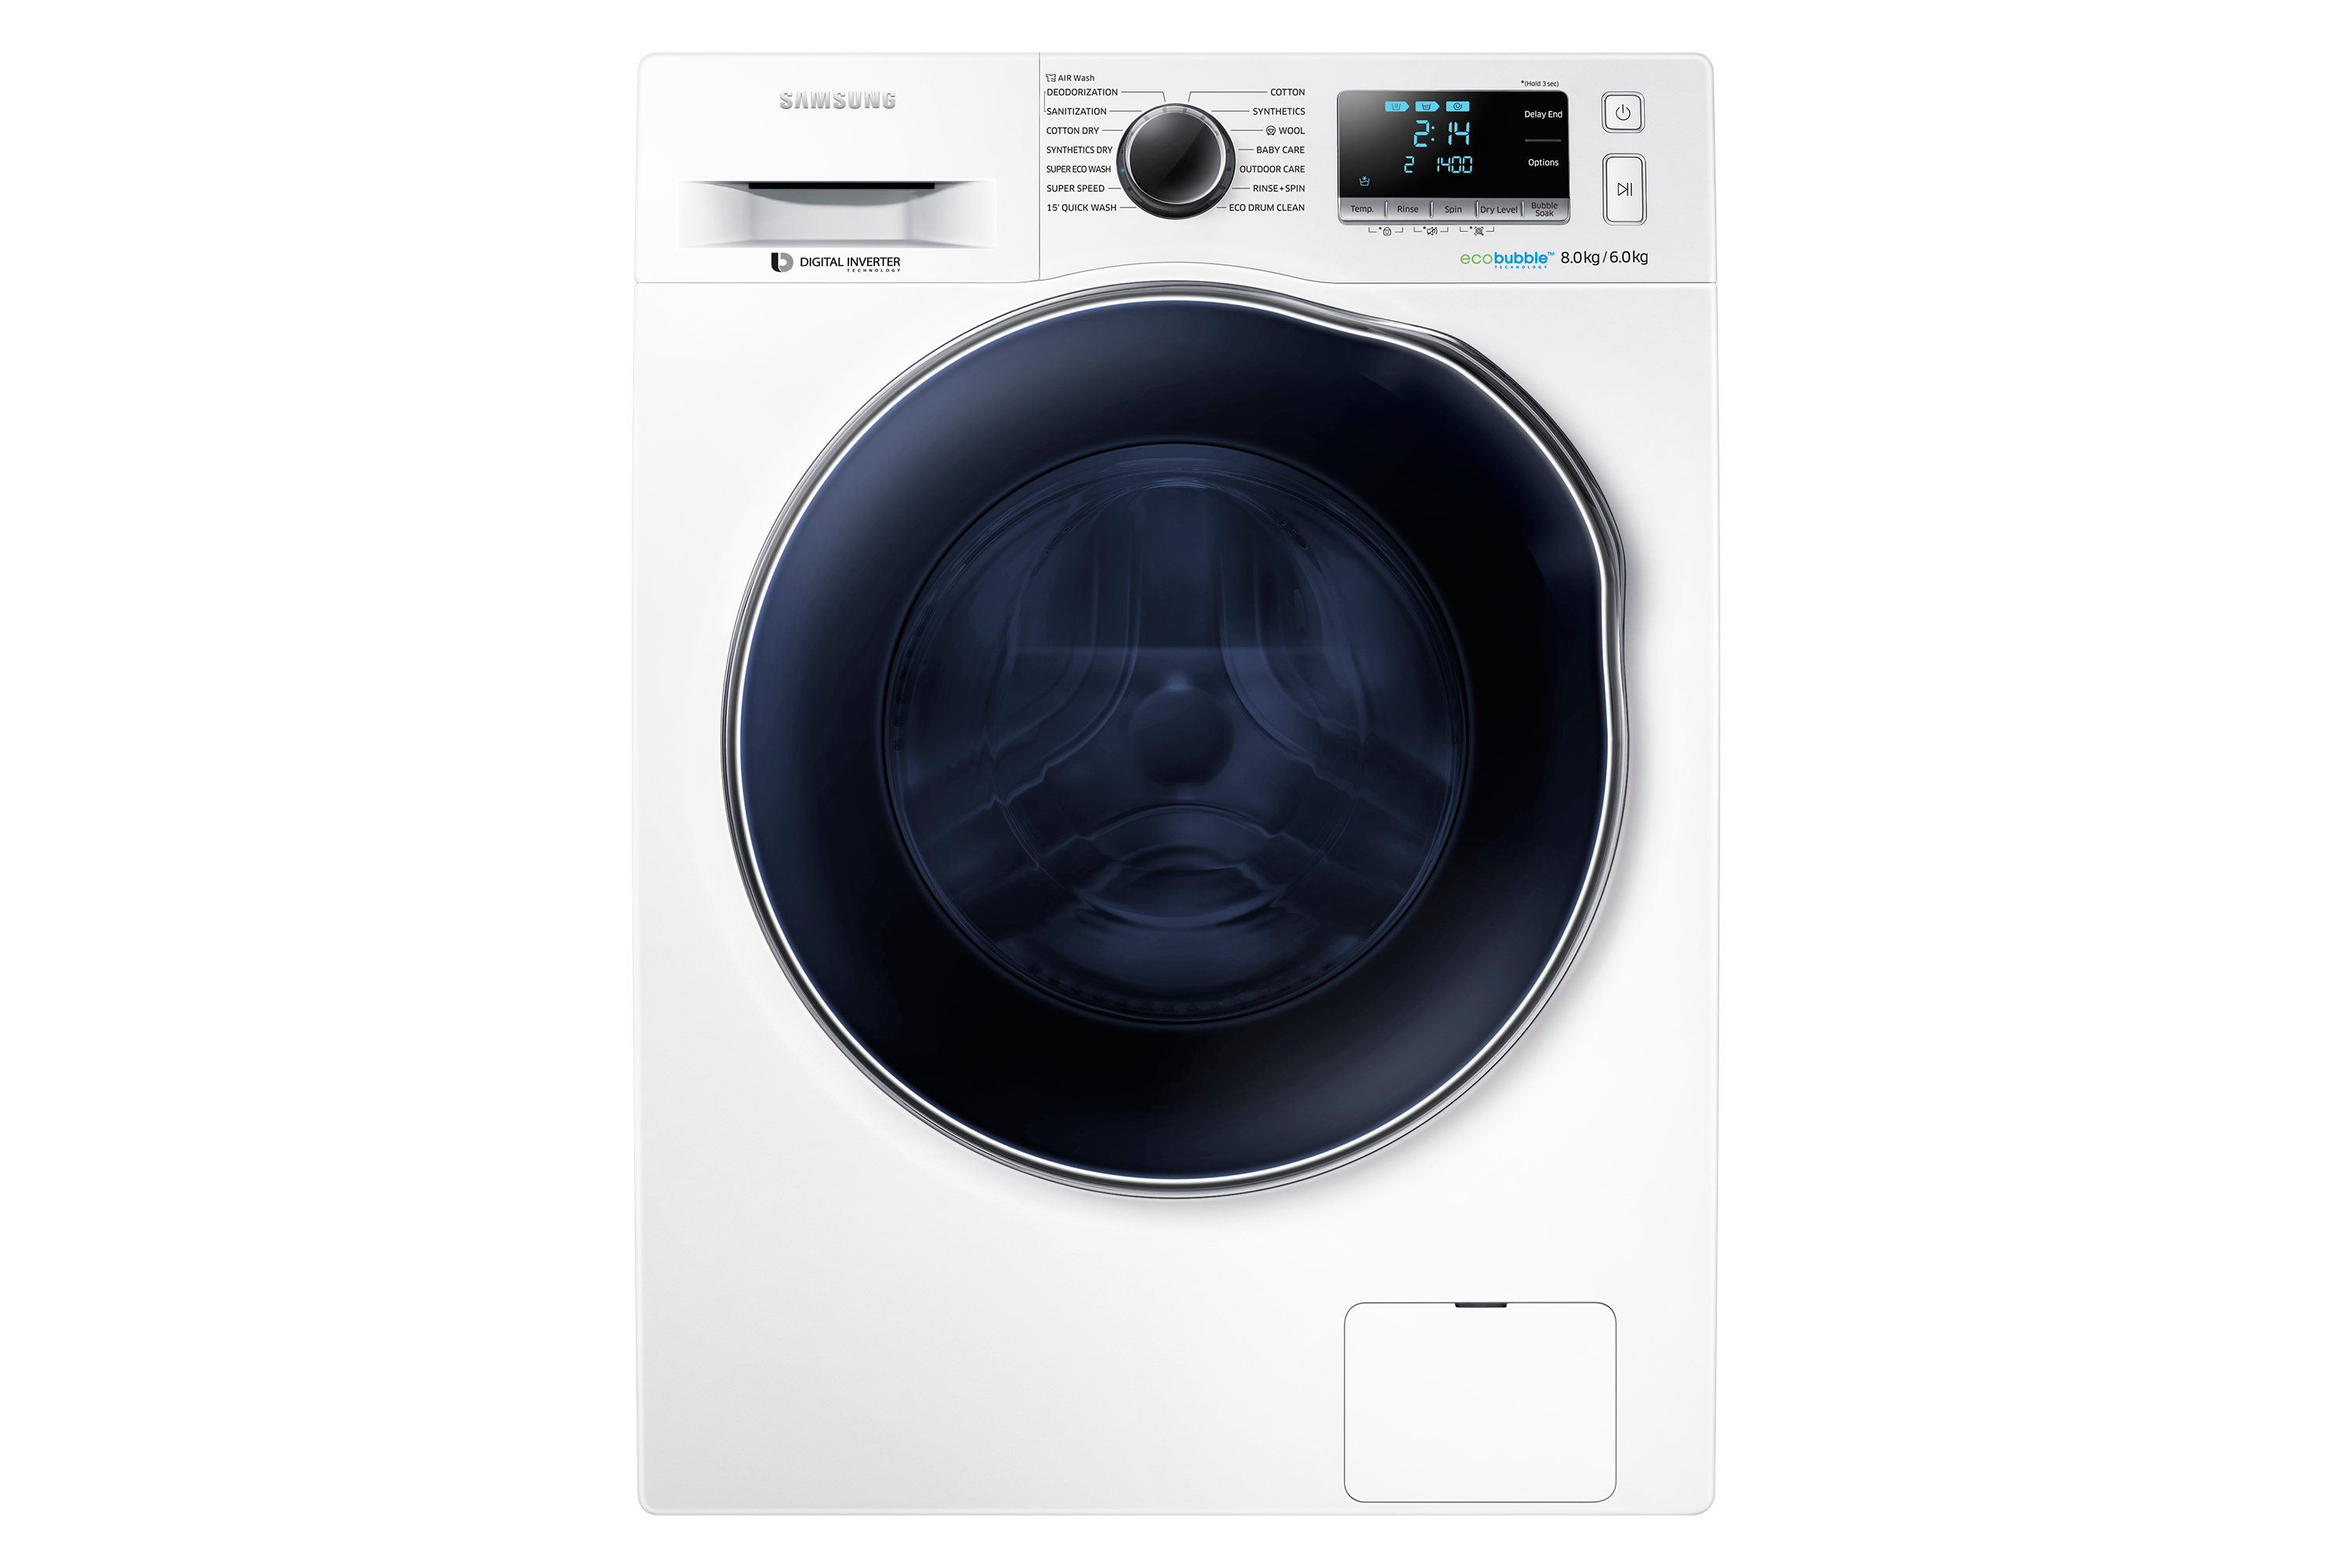 WD6000 Washer Dryer with ecobubble™, 8 kg